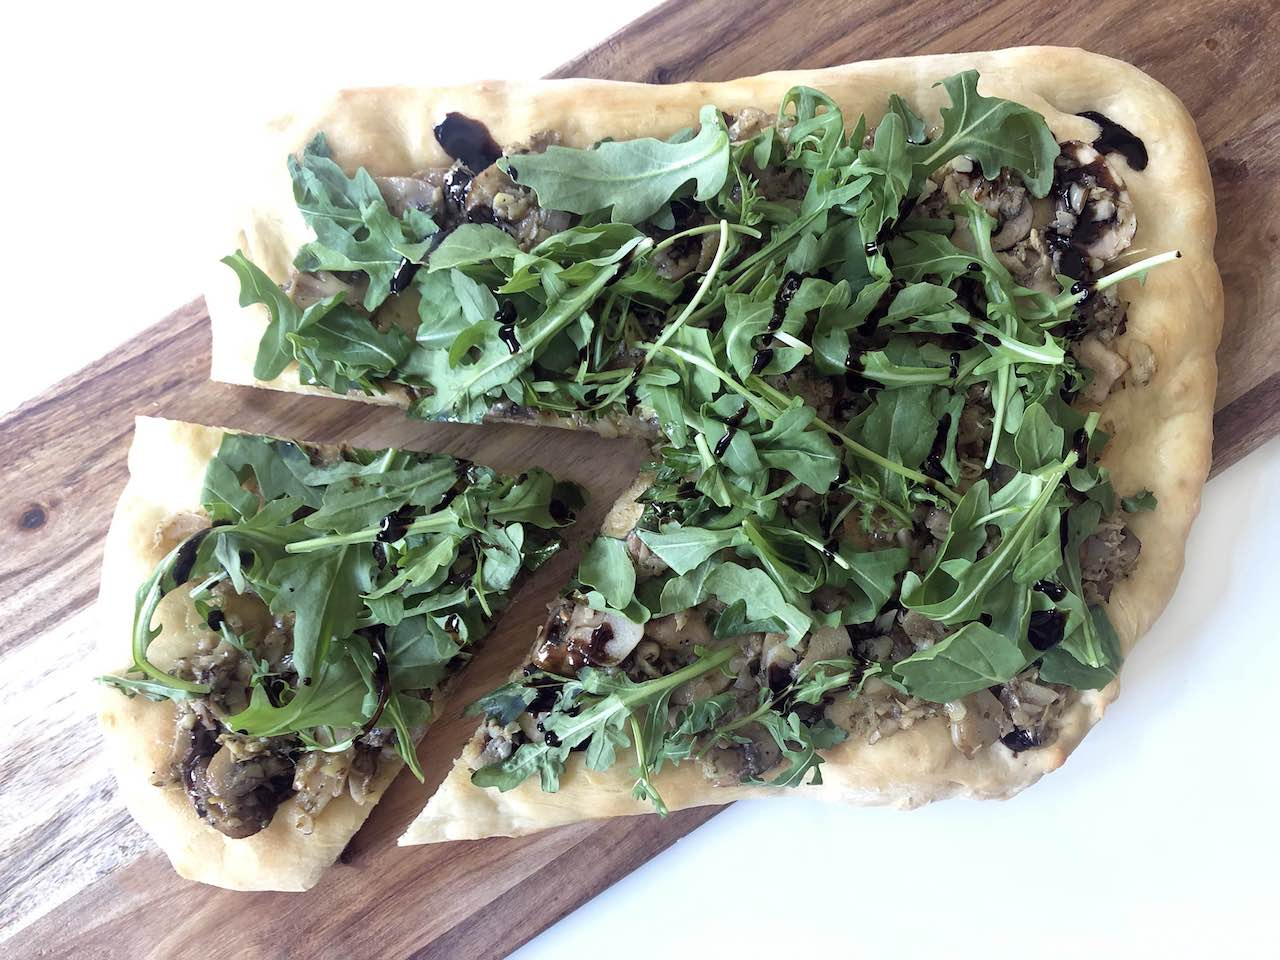 Vegan Artichoke and Mushroom Flatbread